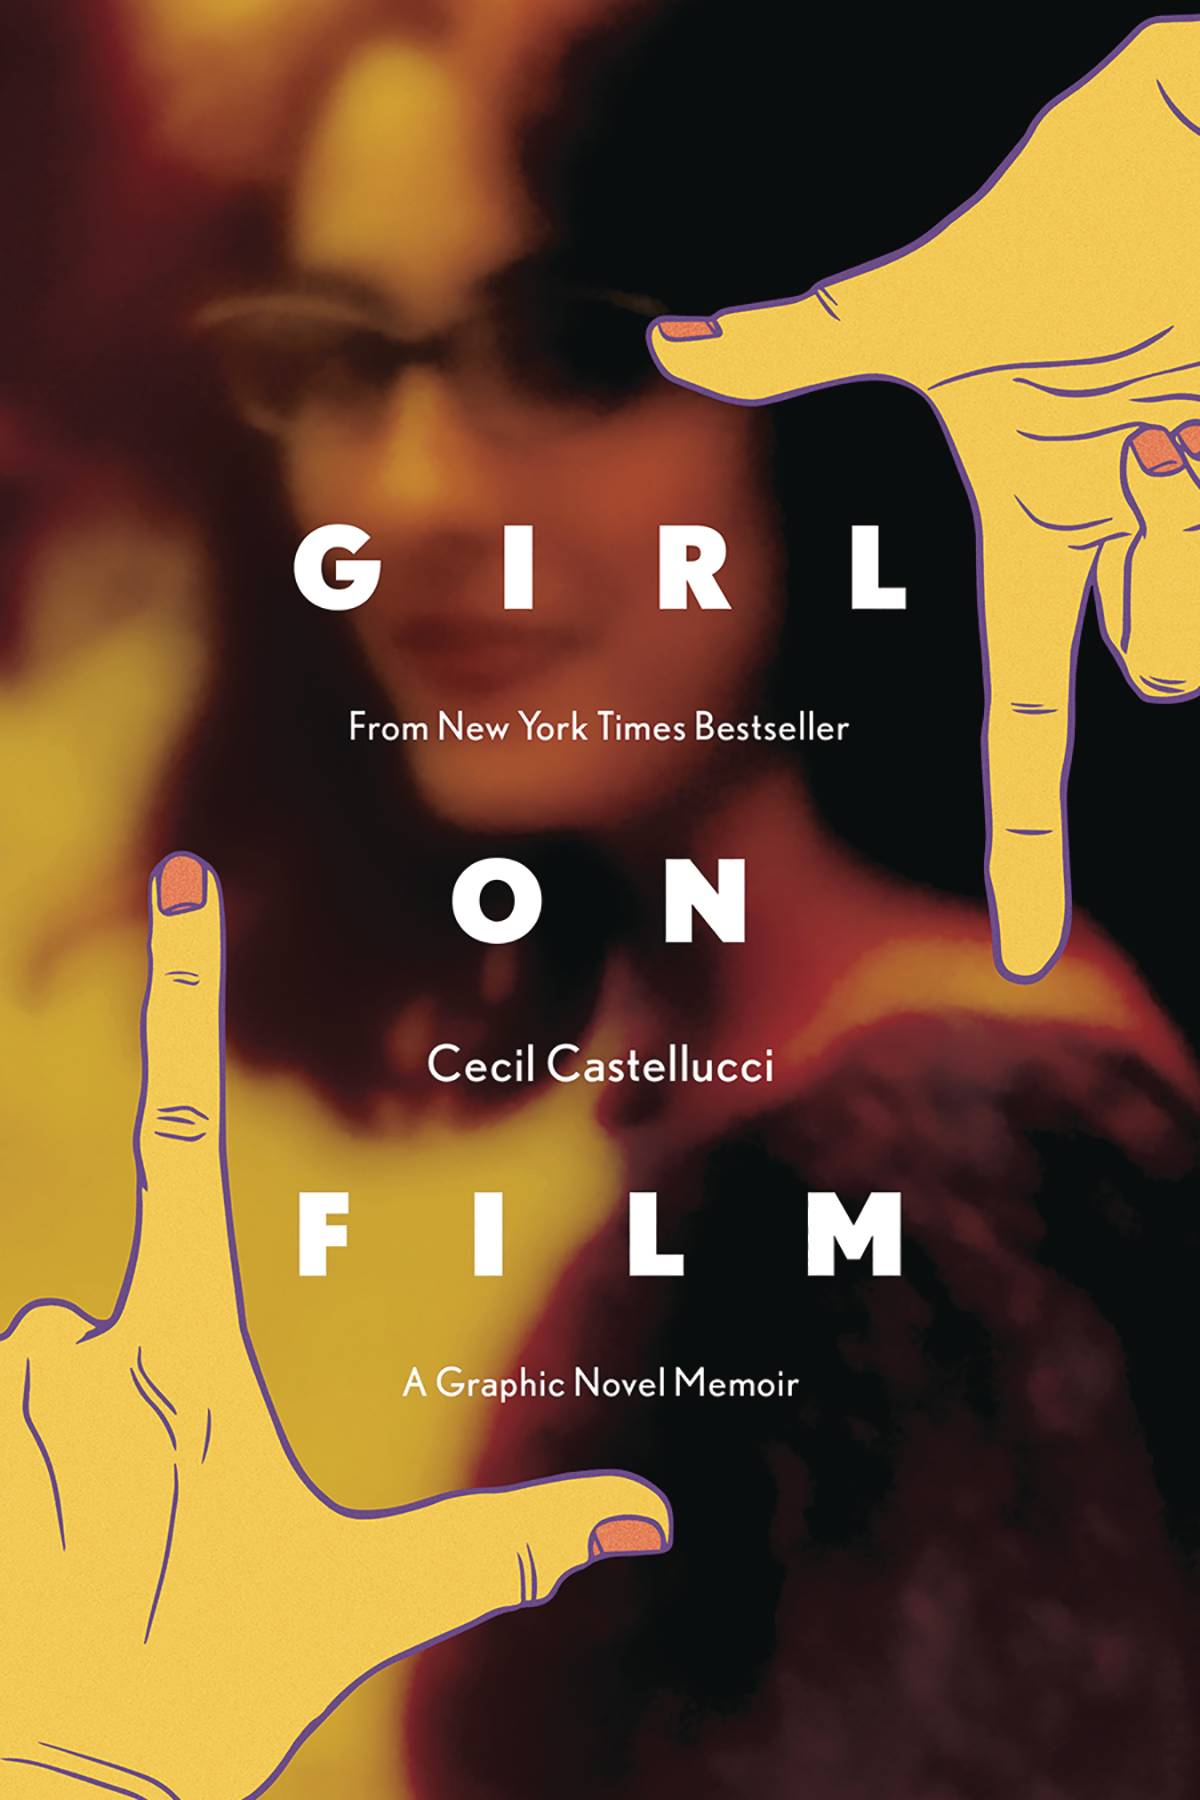 Girl On Film - A Graphic Novel Memoir